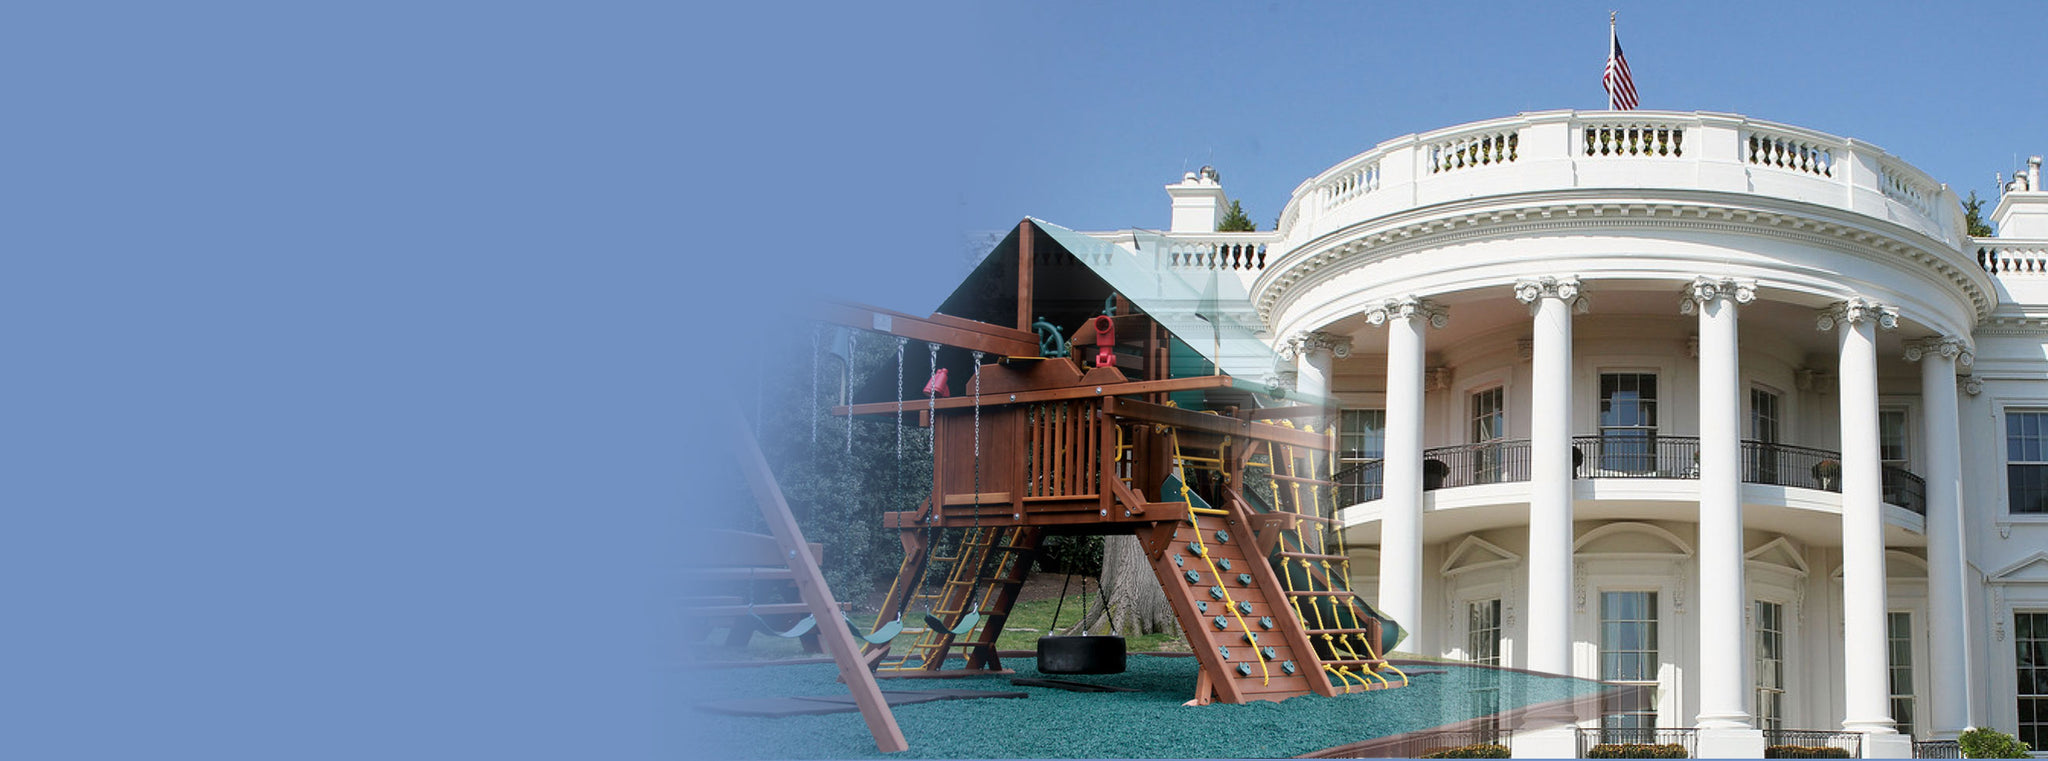 playset with rubber mulch on the white house lawn